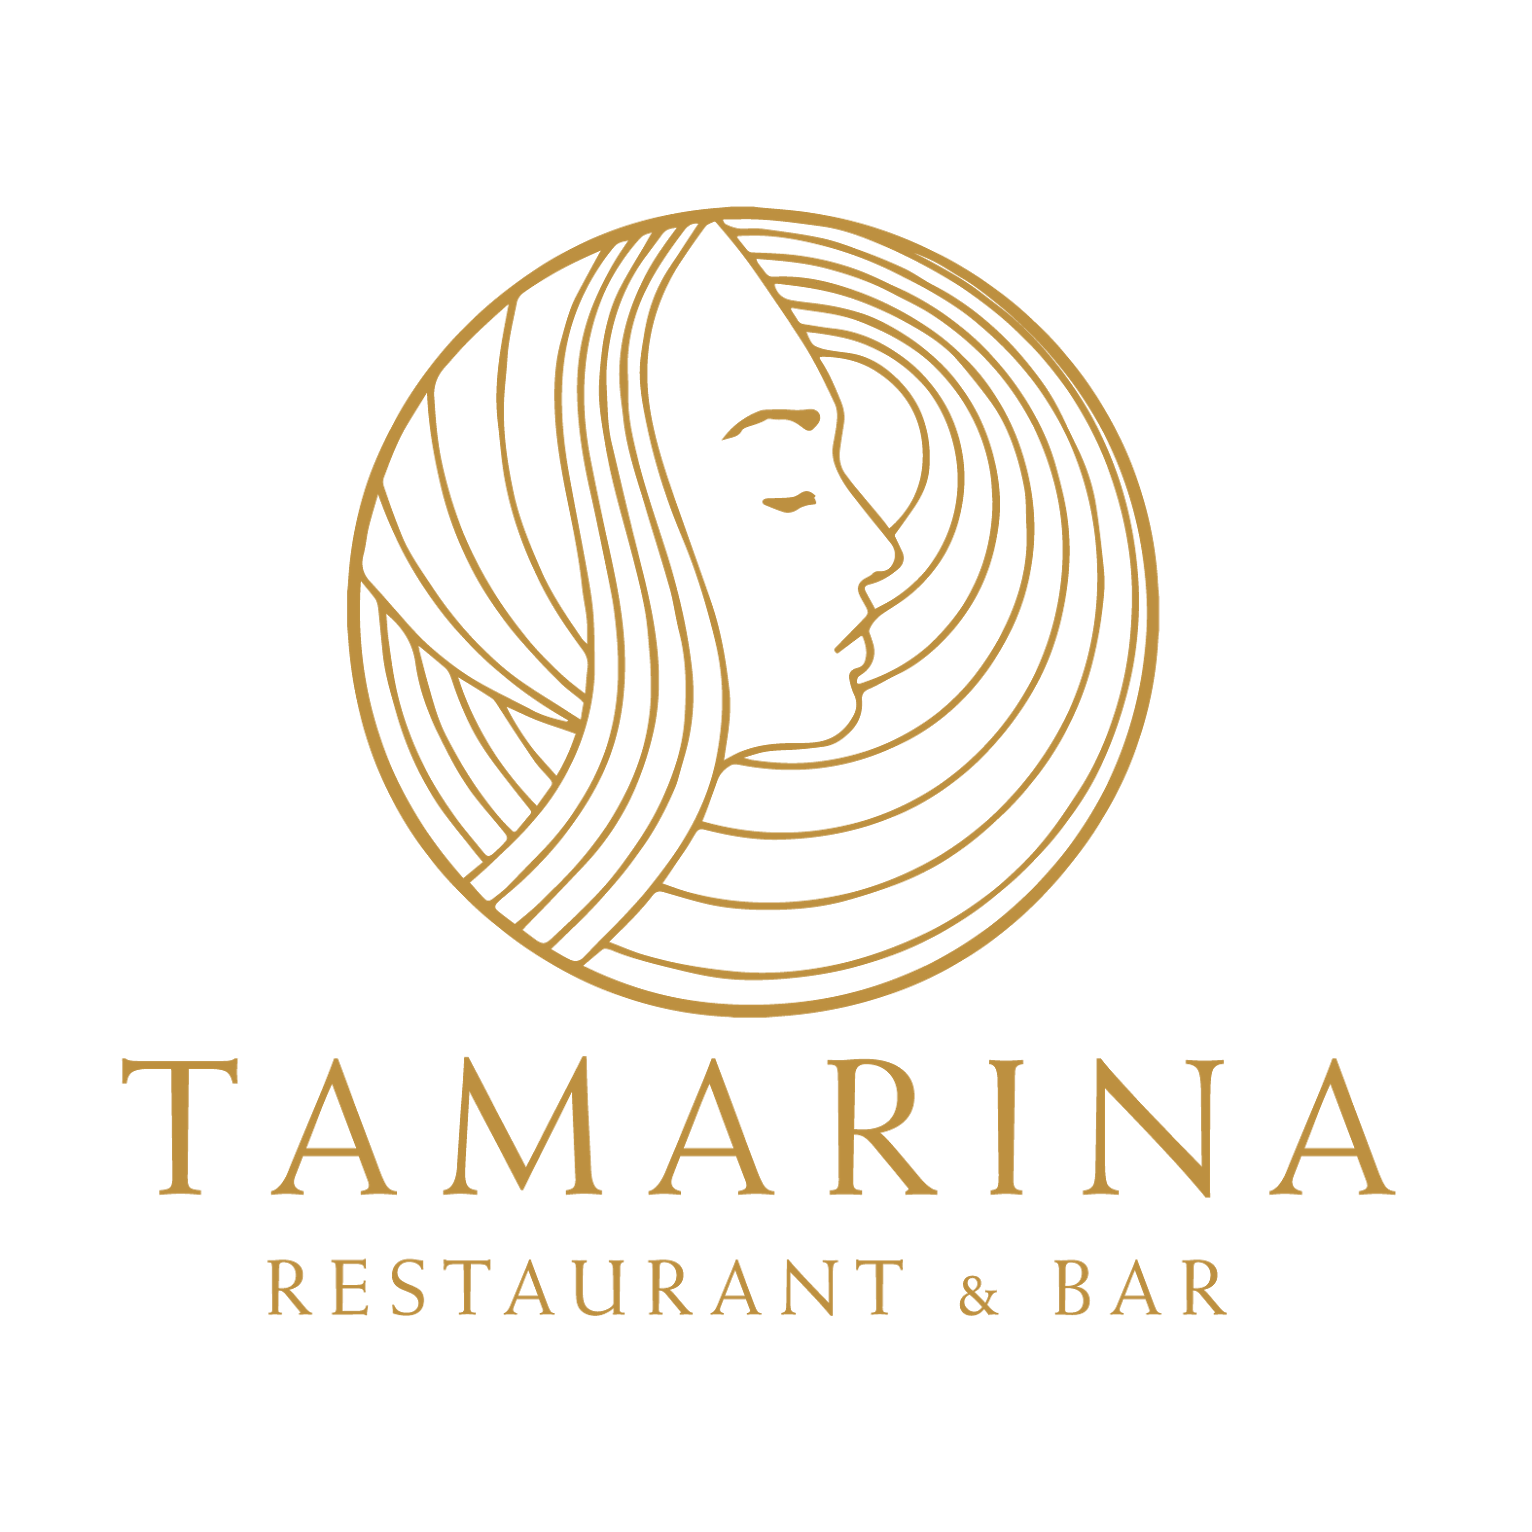 Tamarina Restaurant & Bar